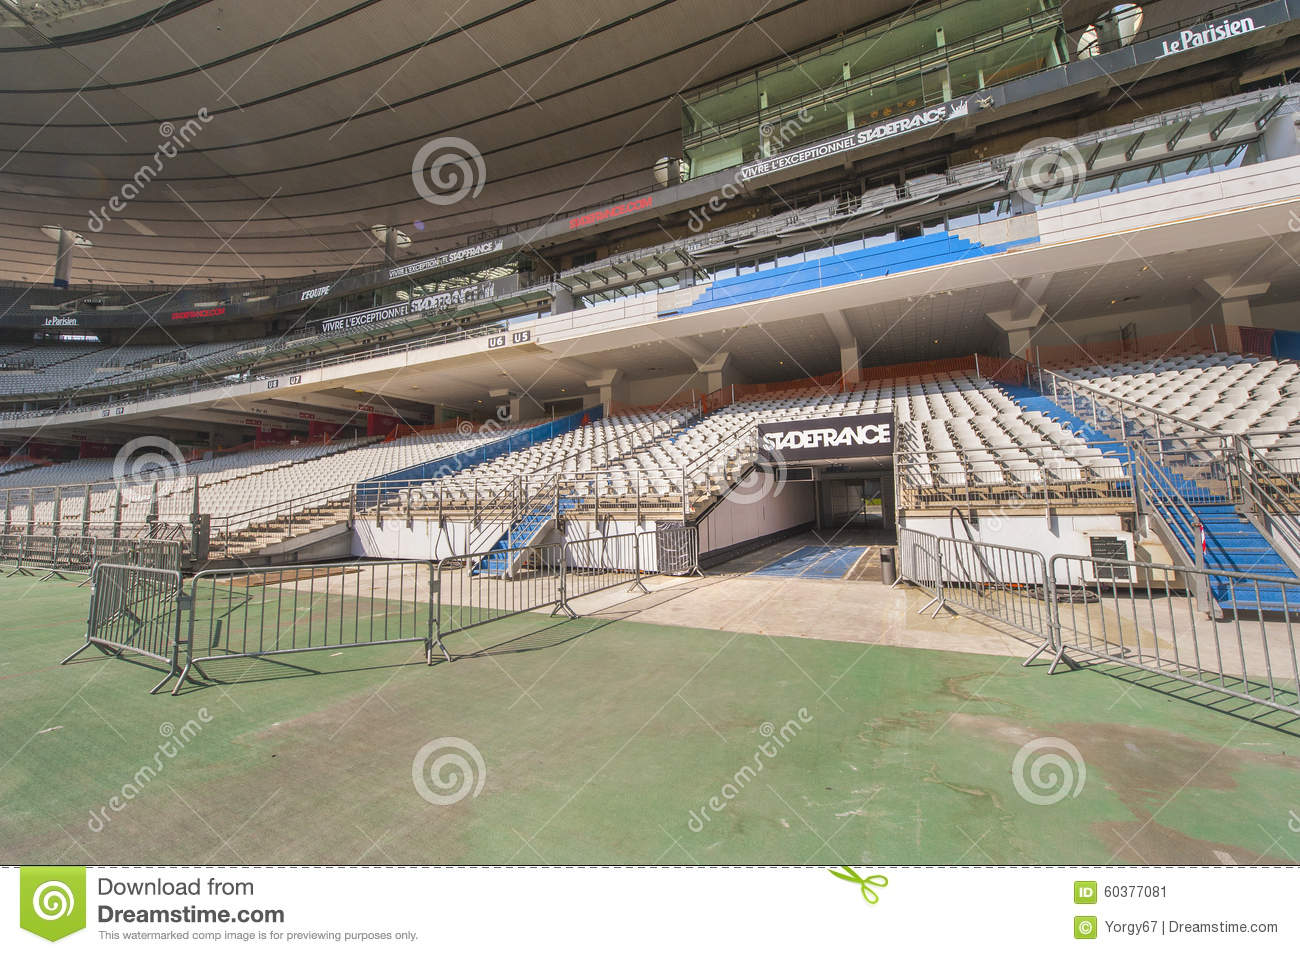 Stade de france photo ditorial image 60377081 - Tribune vip stade de france ...